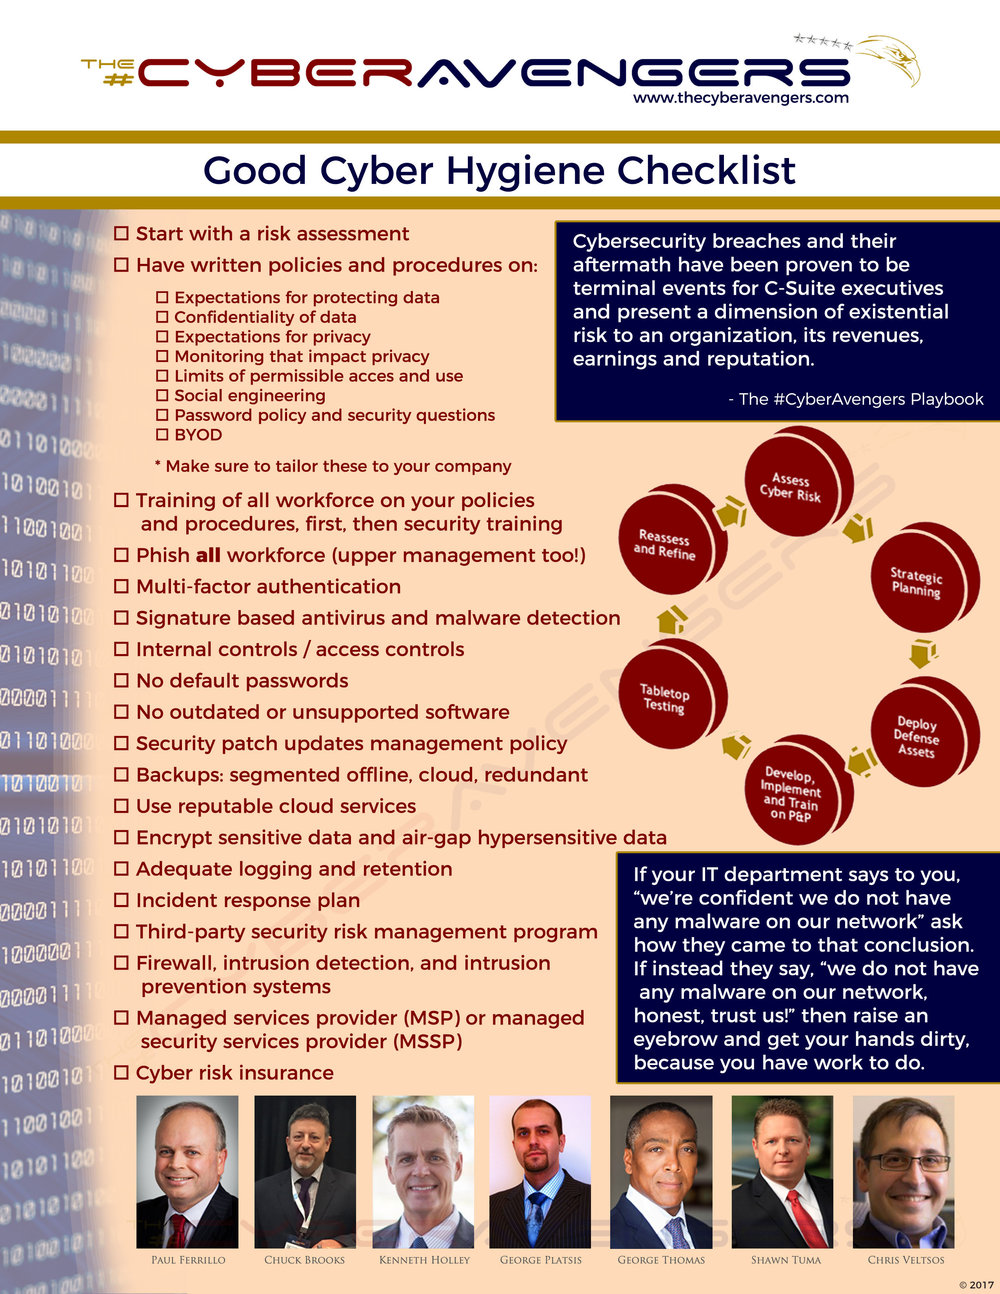 The-CyberAvengers-Good-Cyber-Hygiene-Checklist.jpg